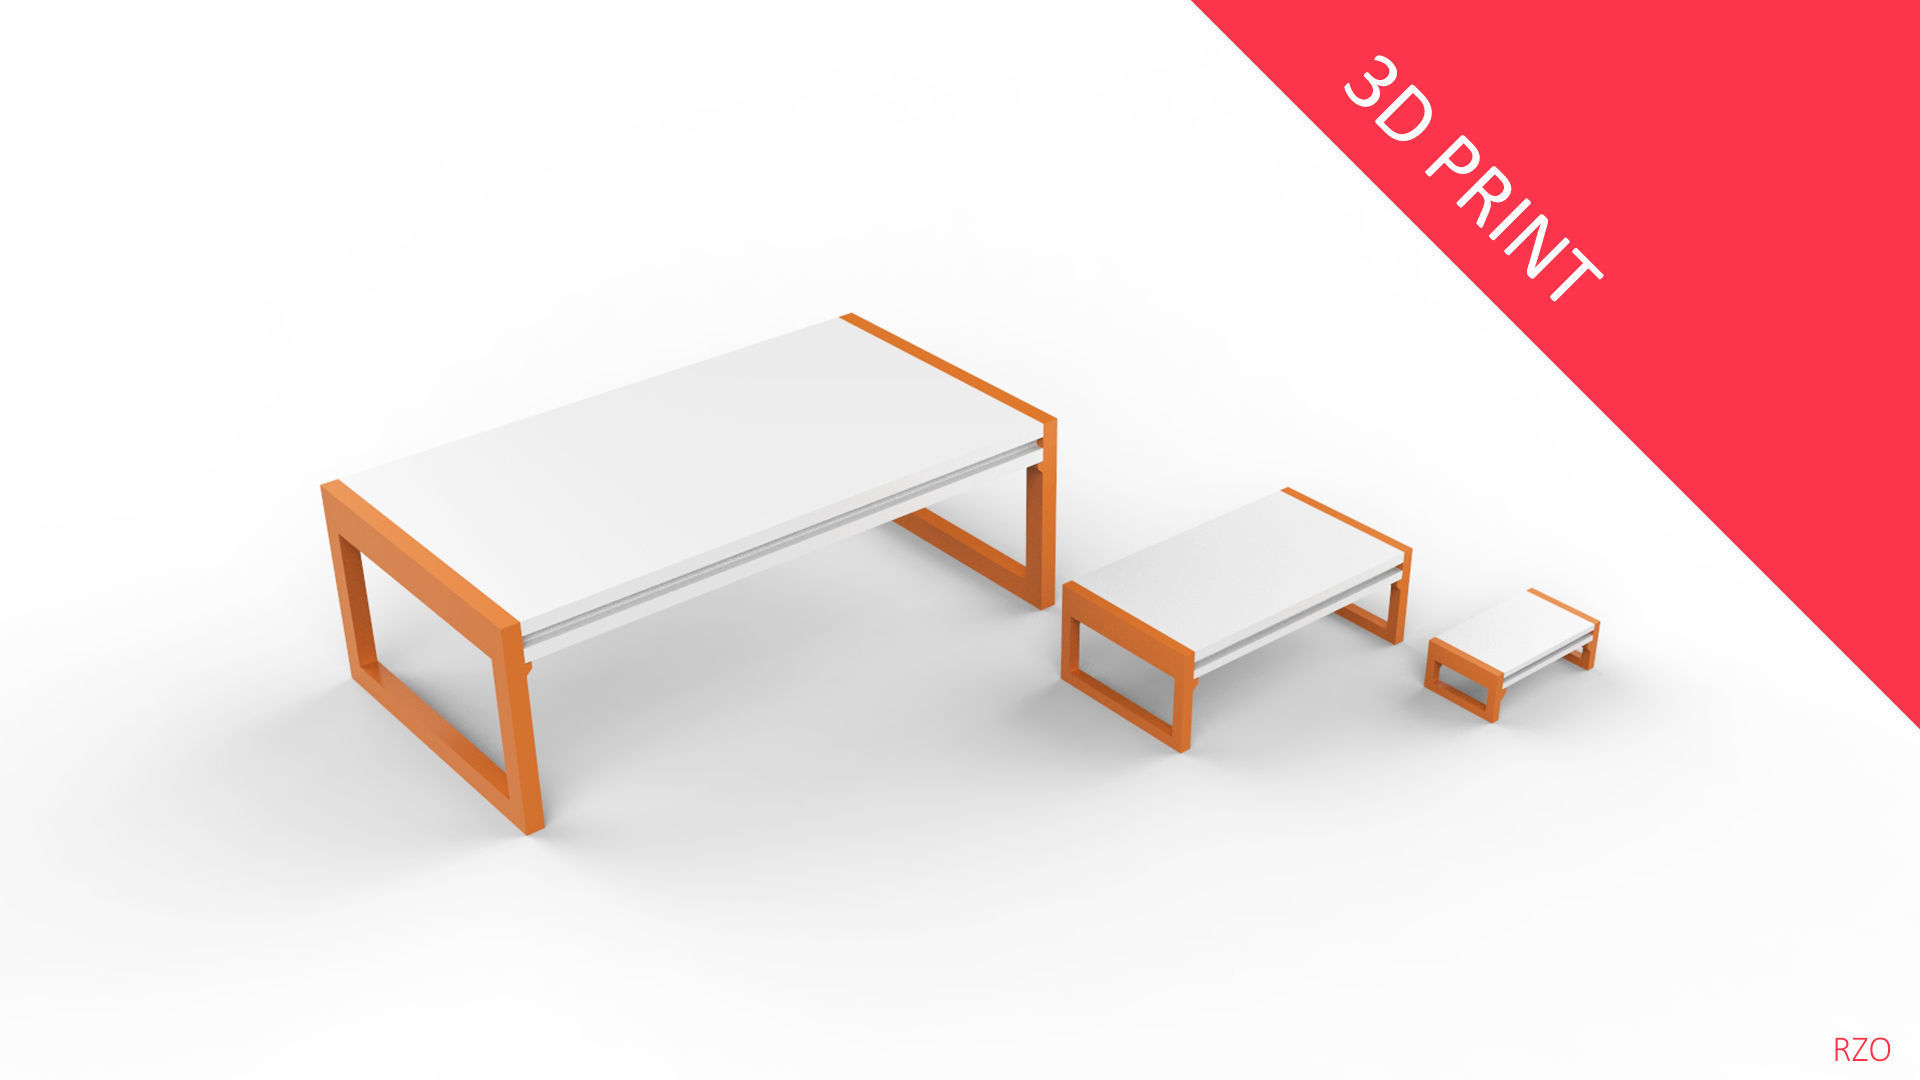 Center Table with 3 Different Sizes